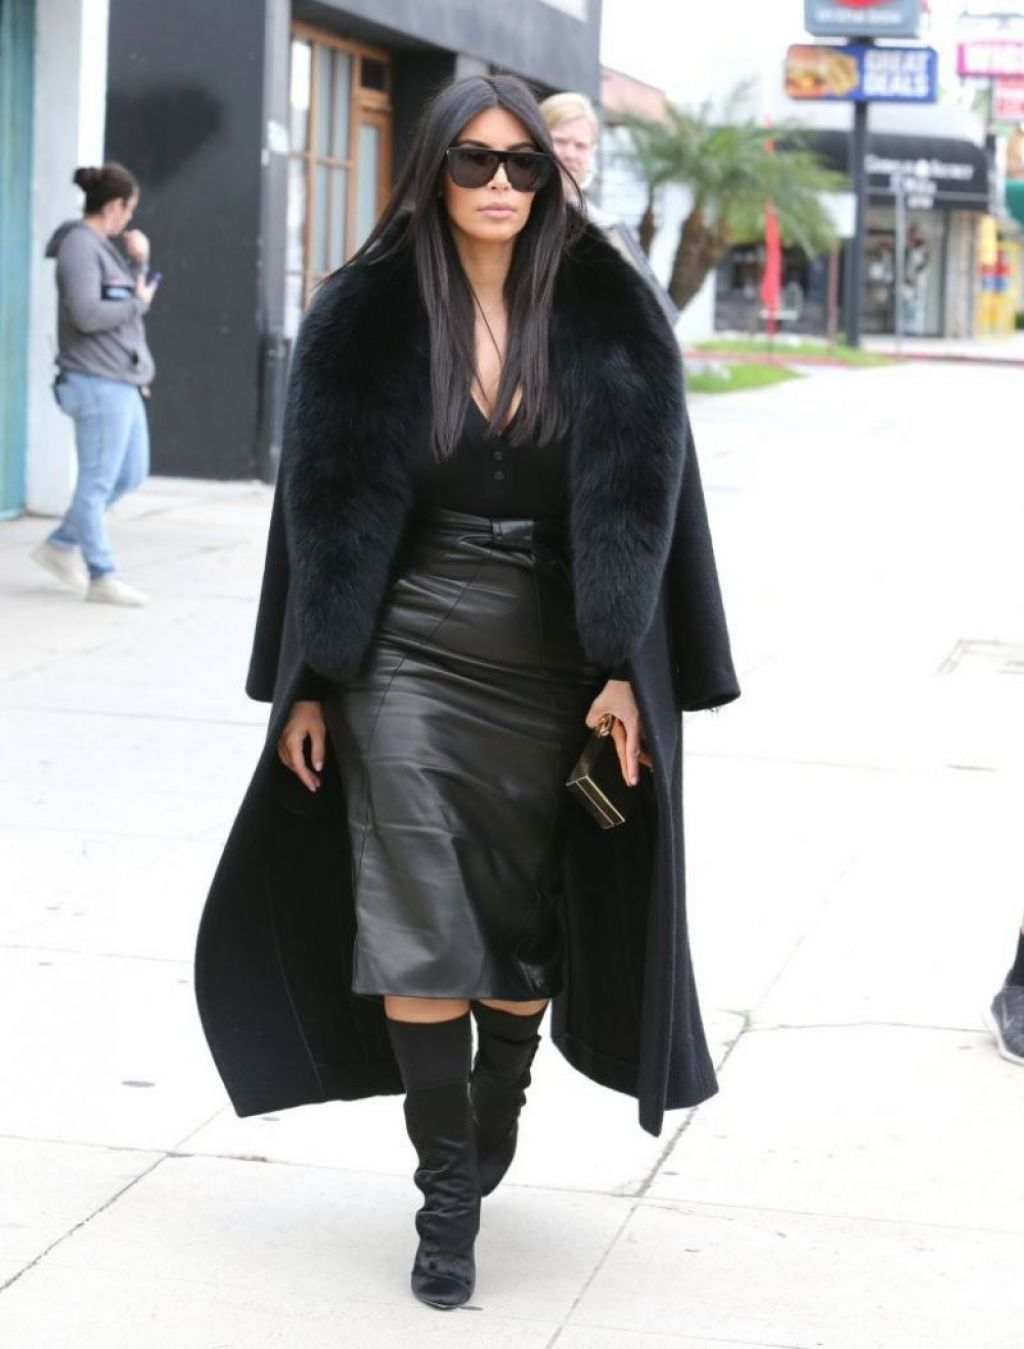 Kim Kardashian U2013 Arrives At A Sporting Store In Los Angeles